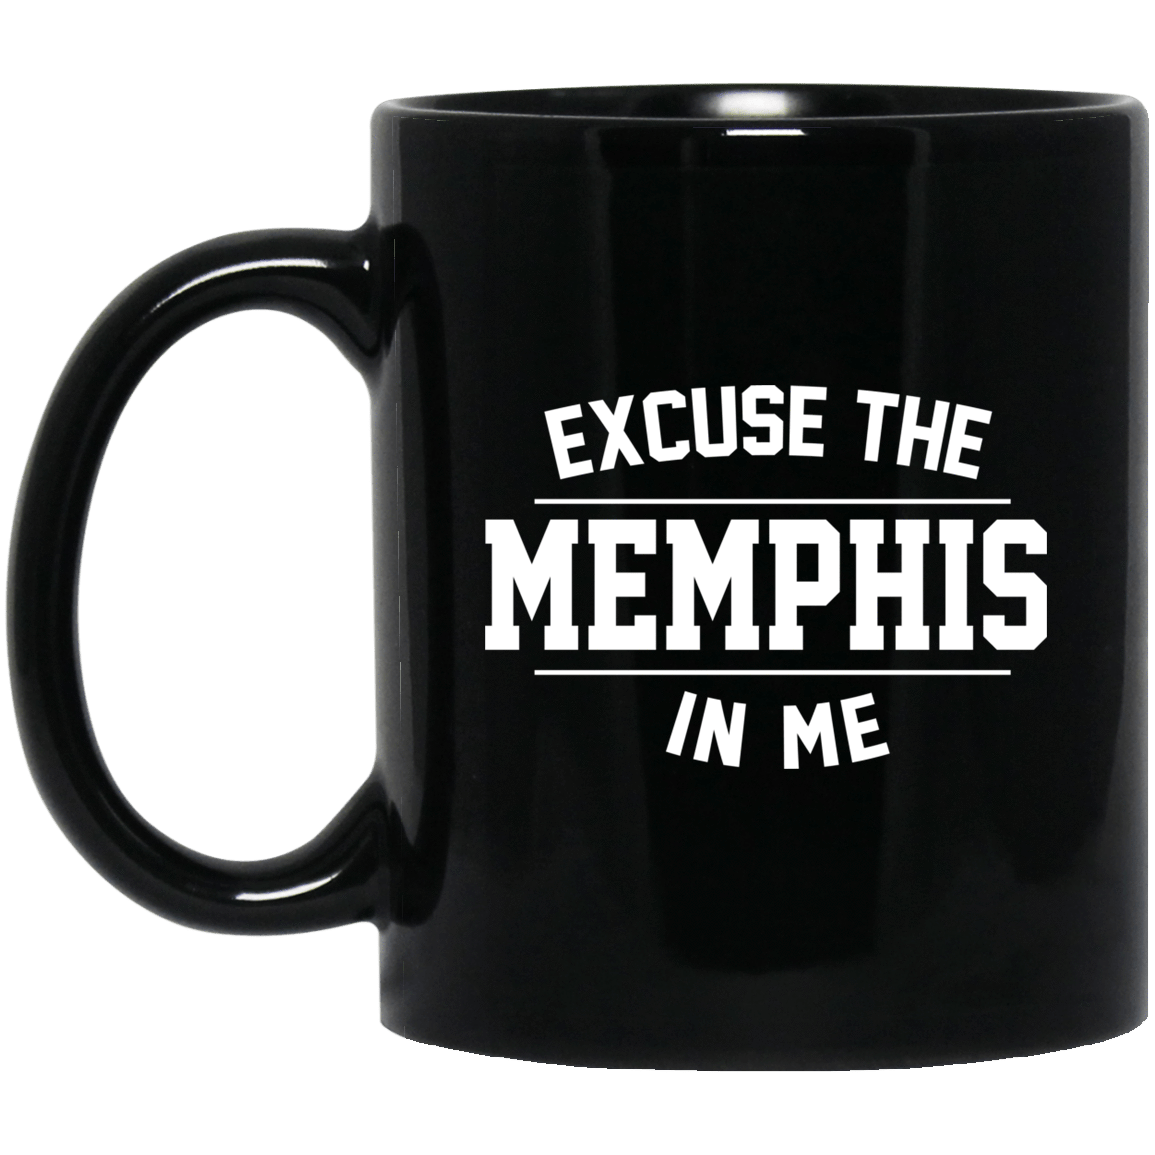 Excuse The Memphis In Me Mug 1065-10181-73548600-49307 - Tee Ript